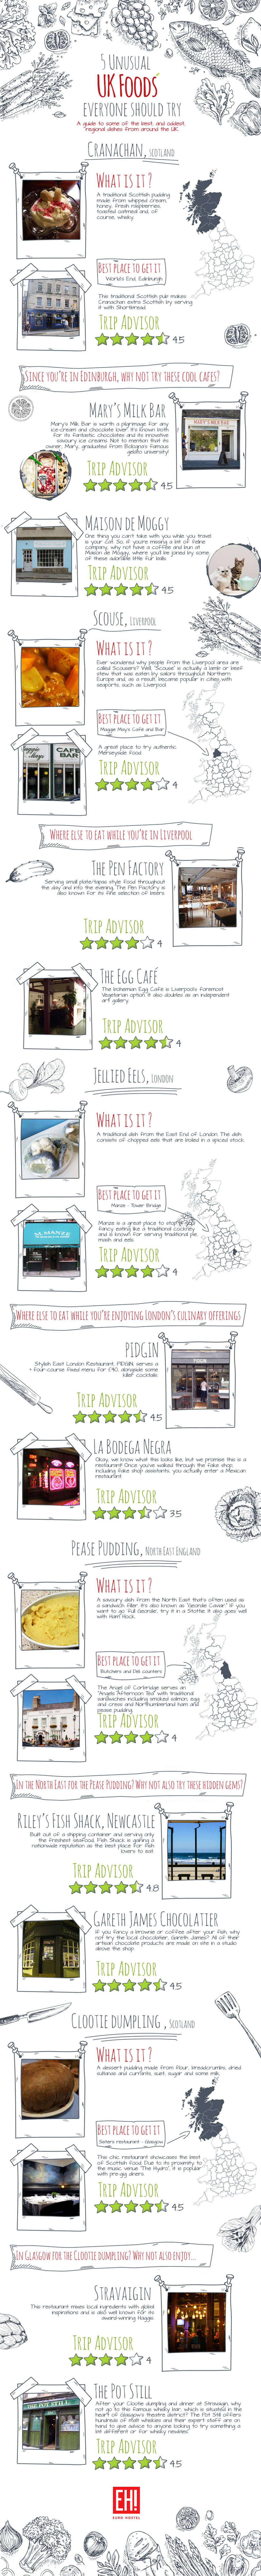 Weird British Food Foreigners Should Try Infographic